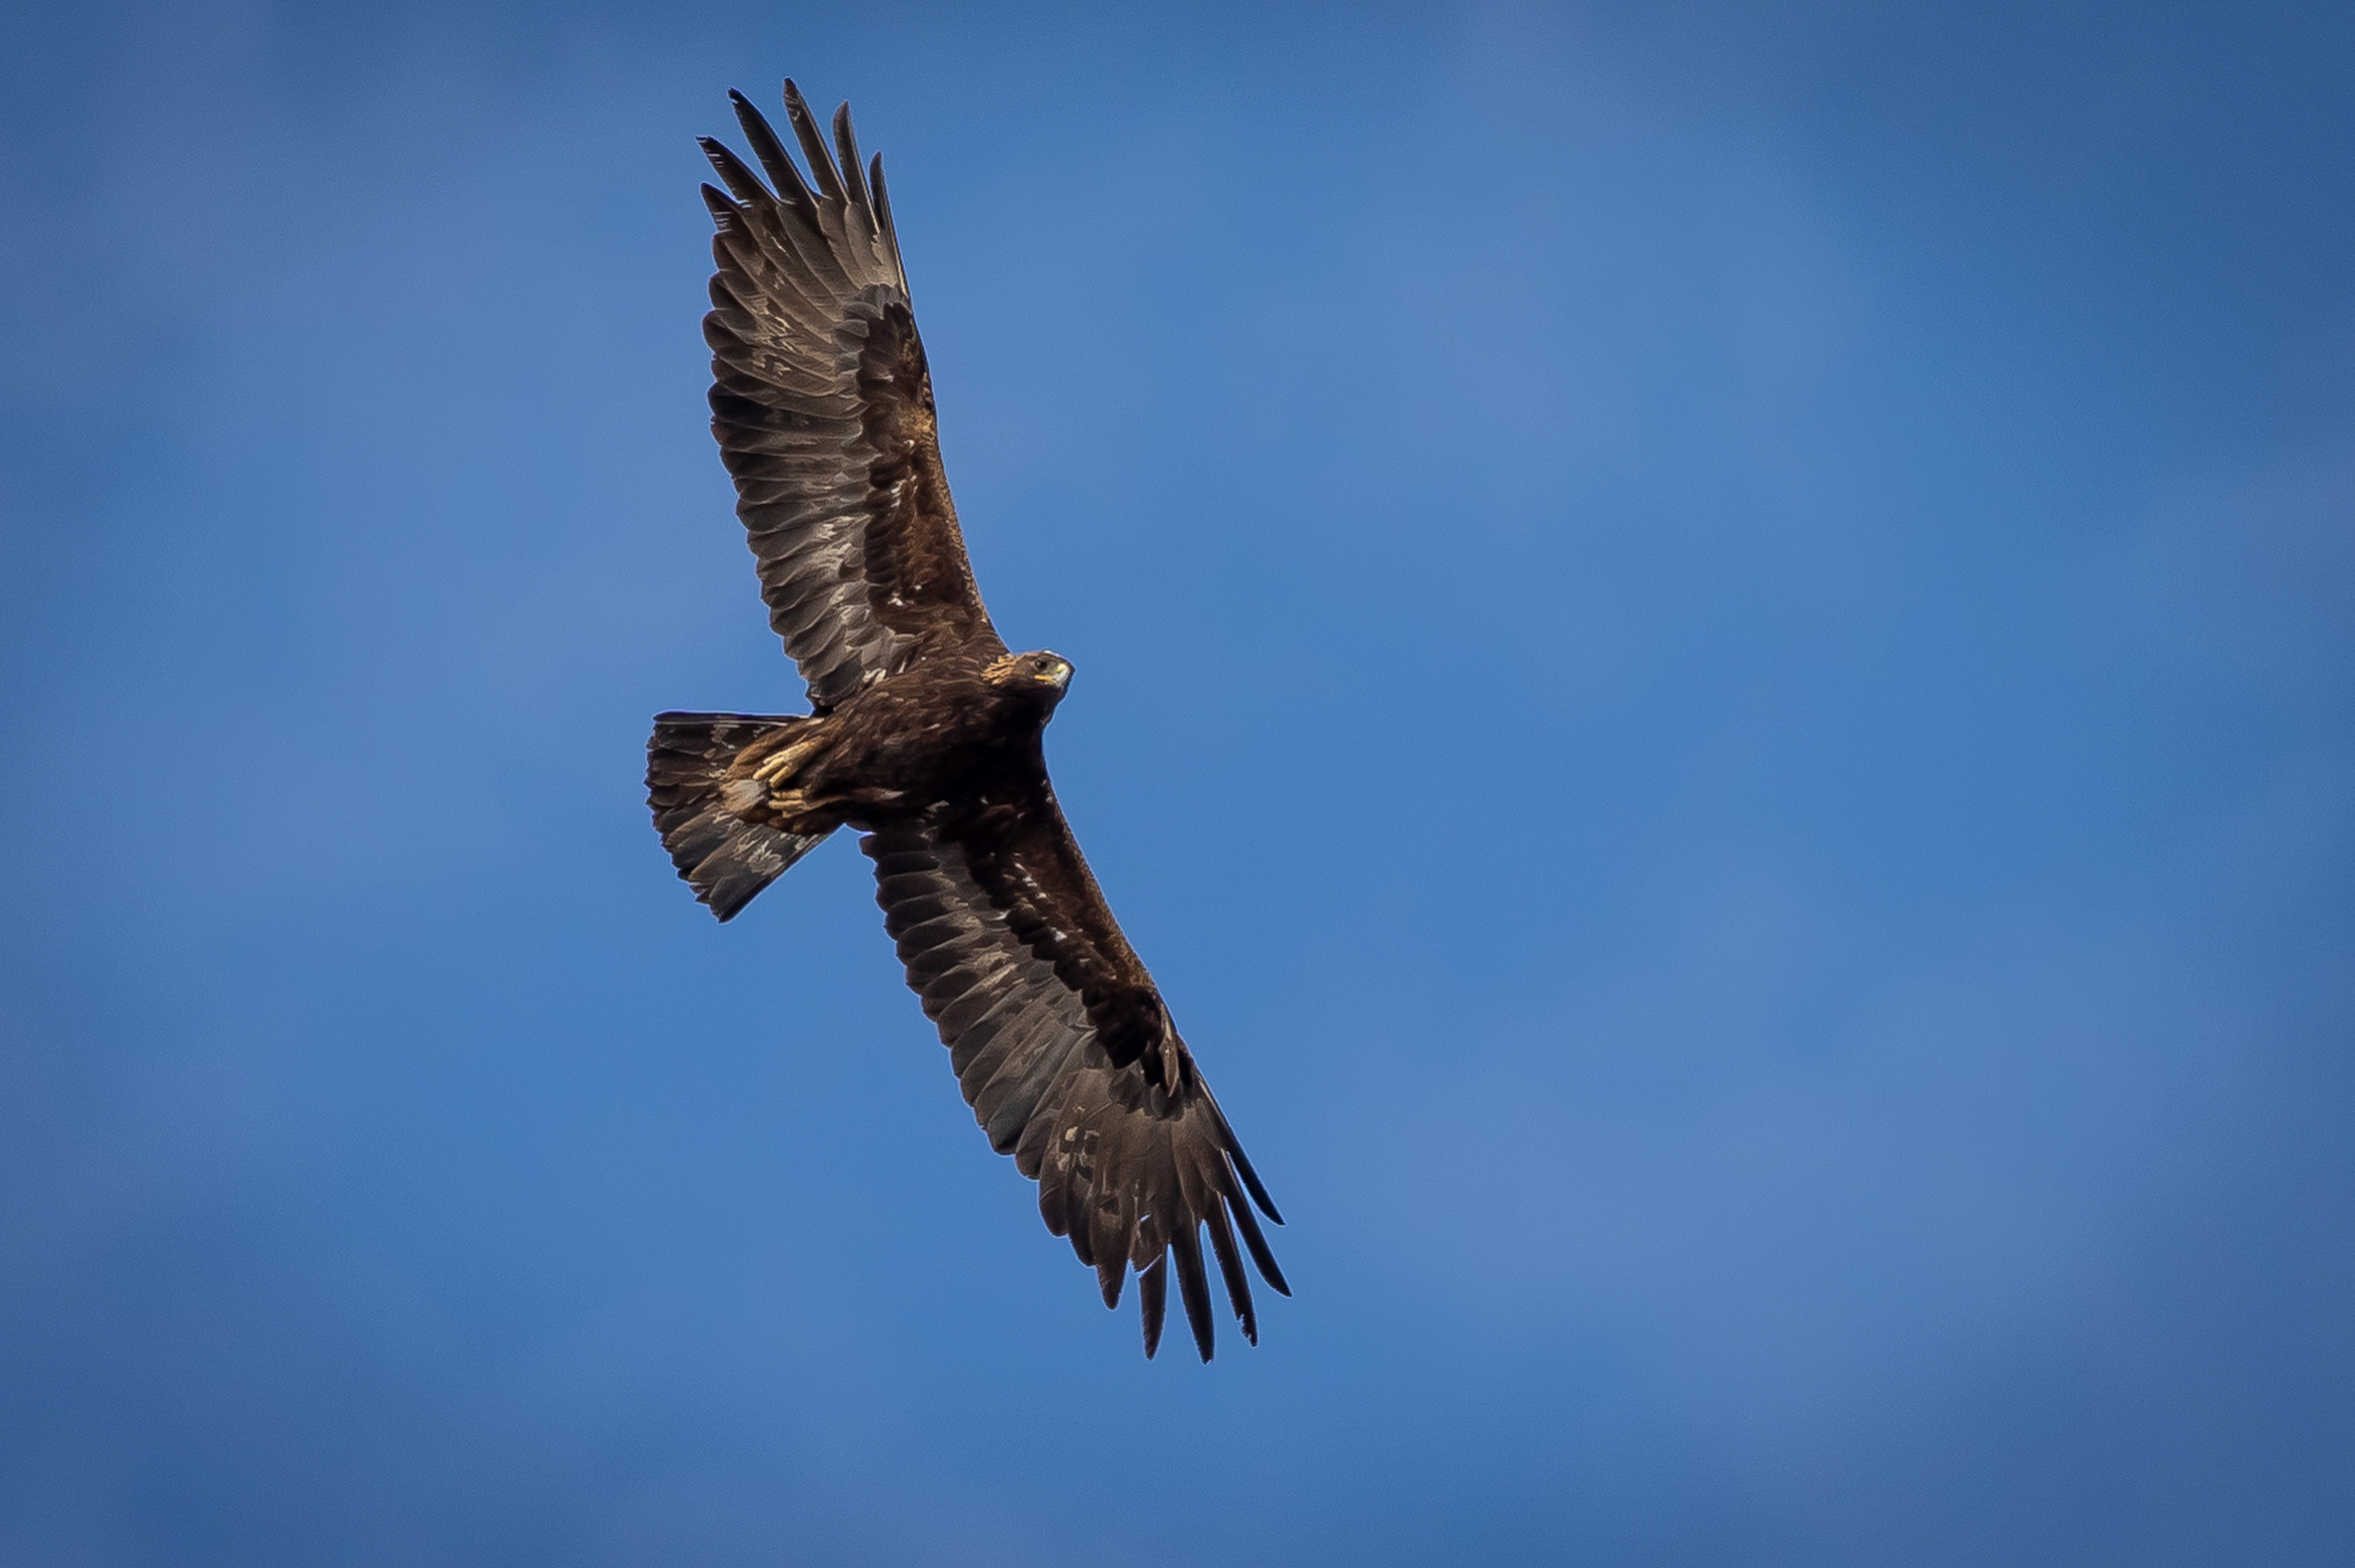 An adult golden eagle circles overhead as Hawkwatch International researchers prepare to enter its nest to collect data and samples from a nestling in a remote area of Box Elder County on Thursday, May 20, 2021.